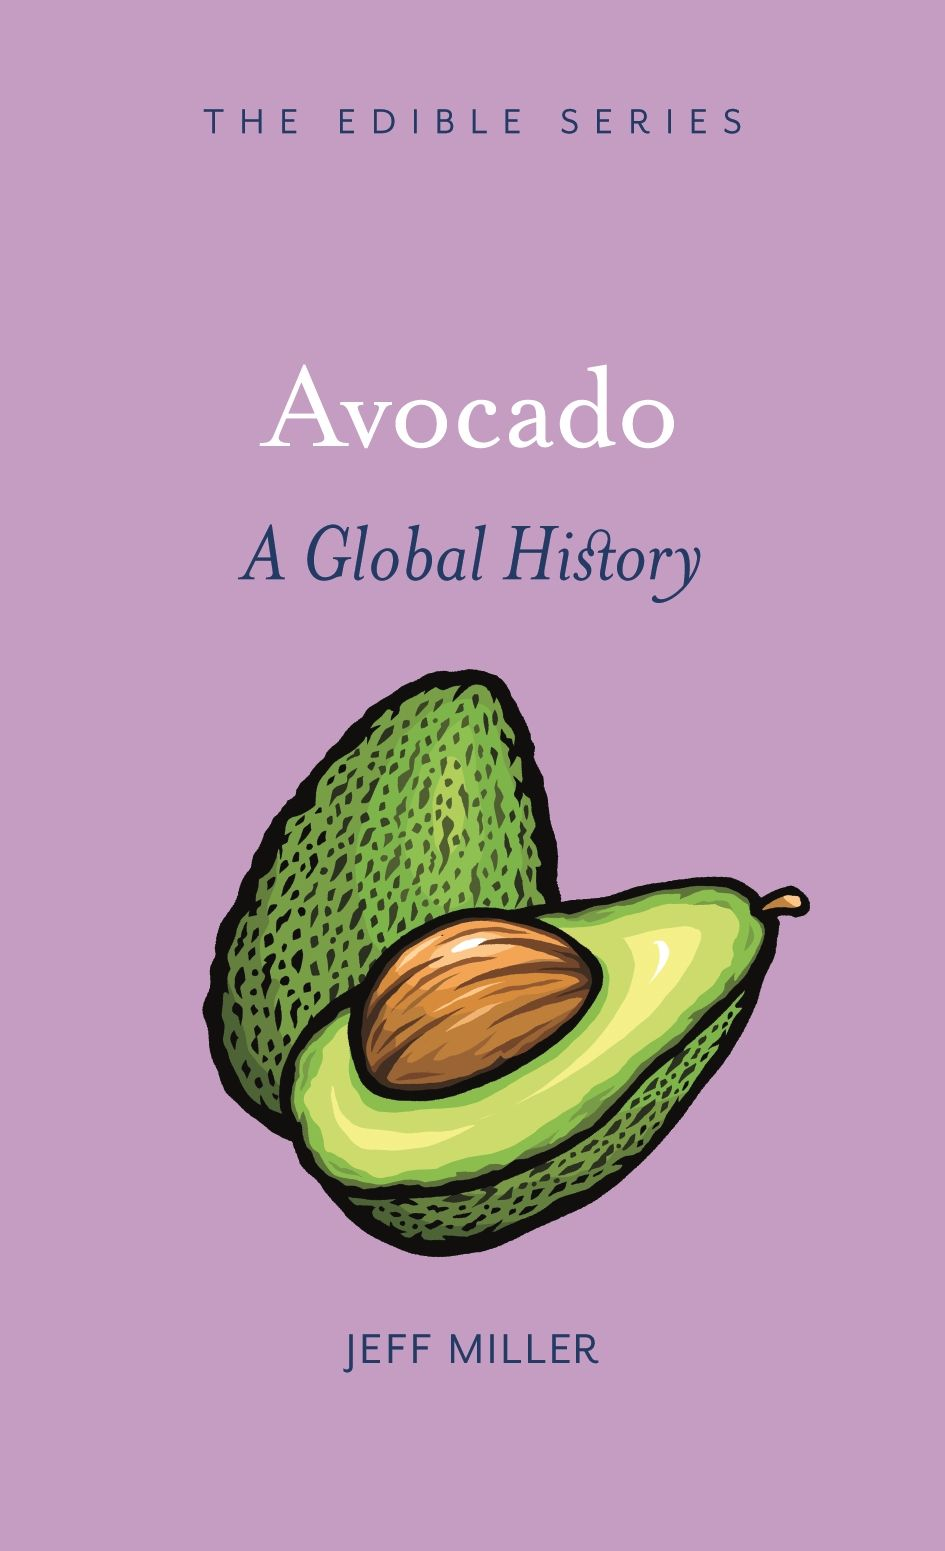 Avocado: A Global History